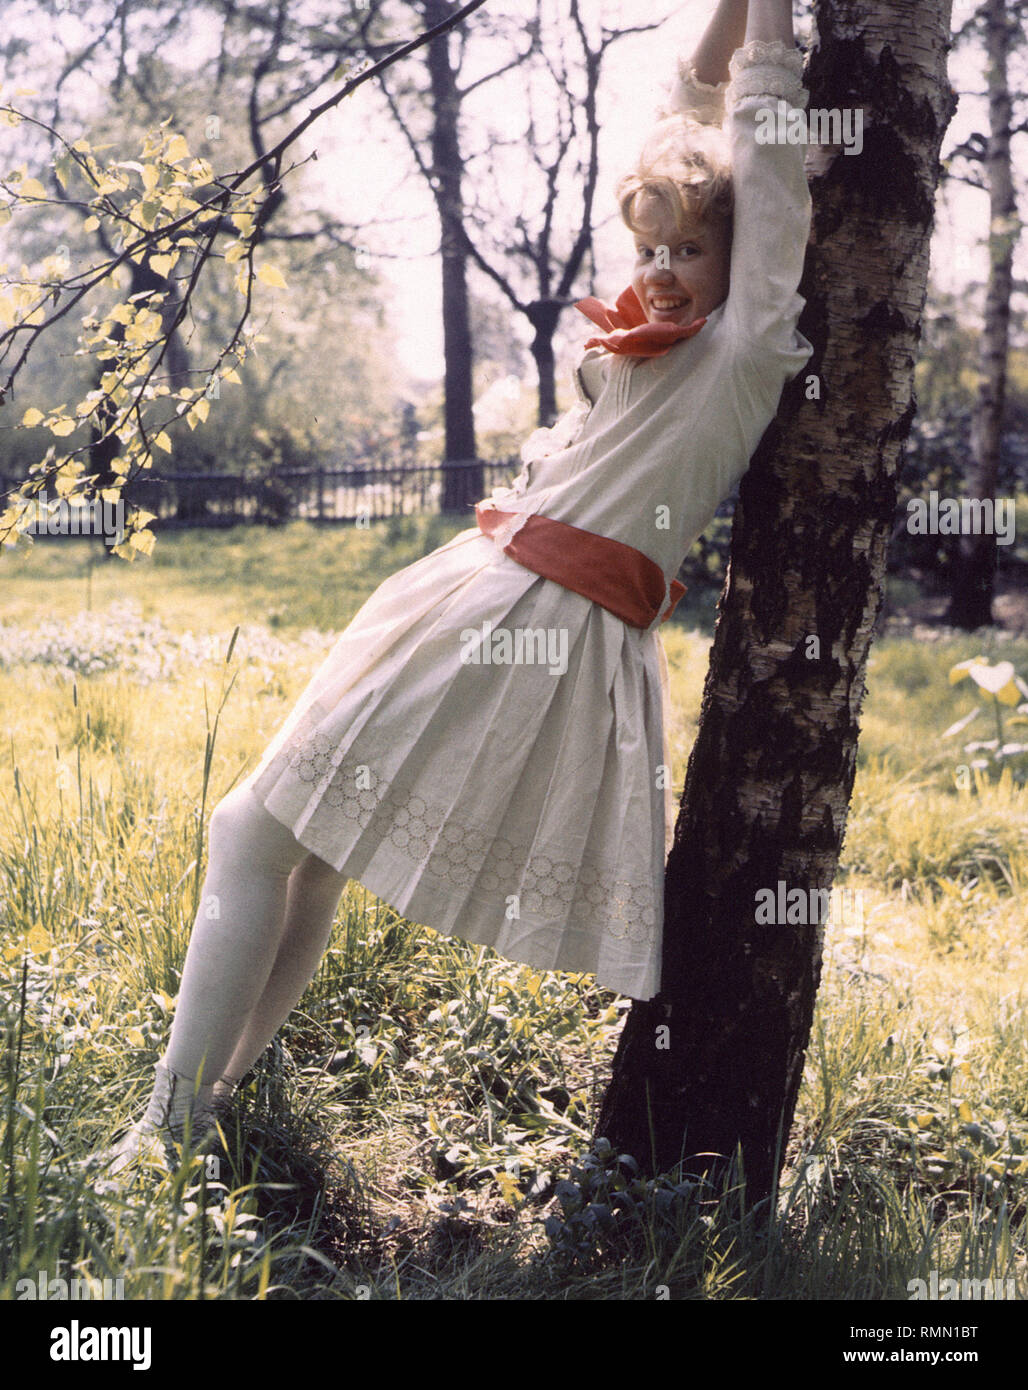 Hayley Mills, 'Pollyanna' (1960) Walt Disney Pictures  File Reference # 33751_252THA - Stock Image